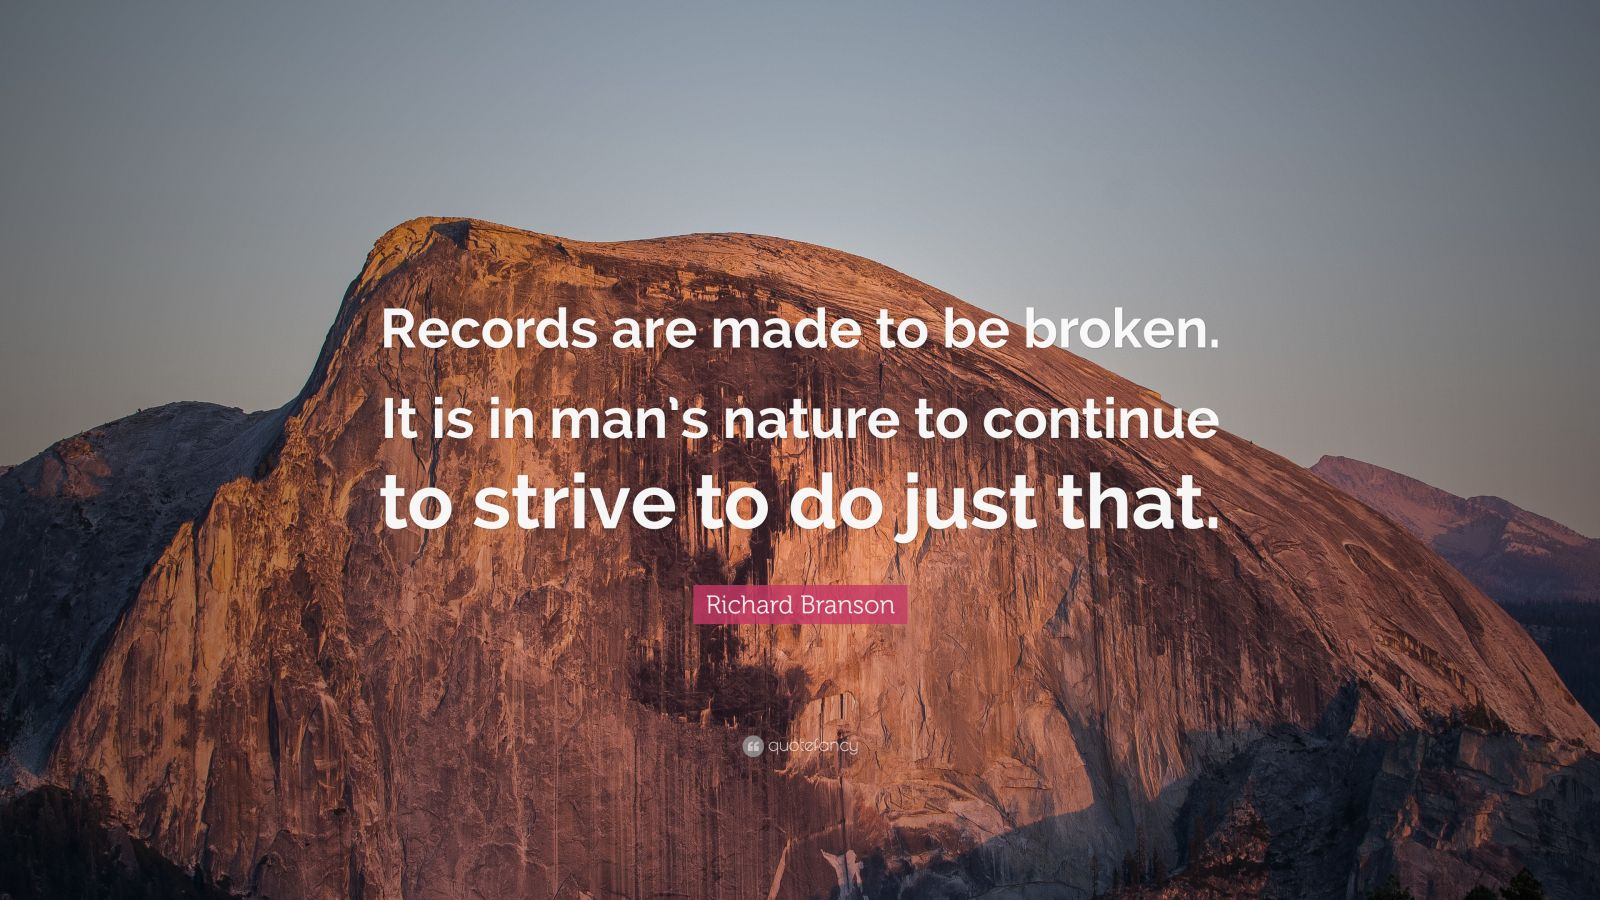 """Richard Branson Quote: """"Records are made to be broken. It is in man's nature to continue to strive to do just that."""""""